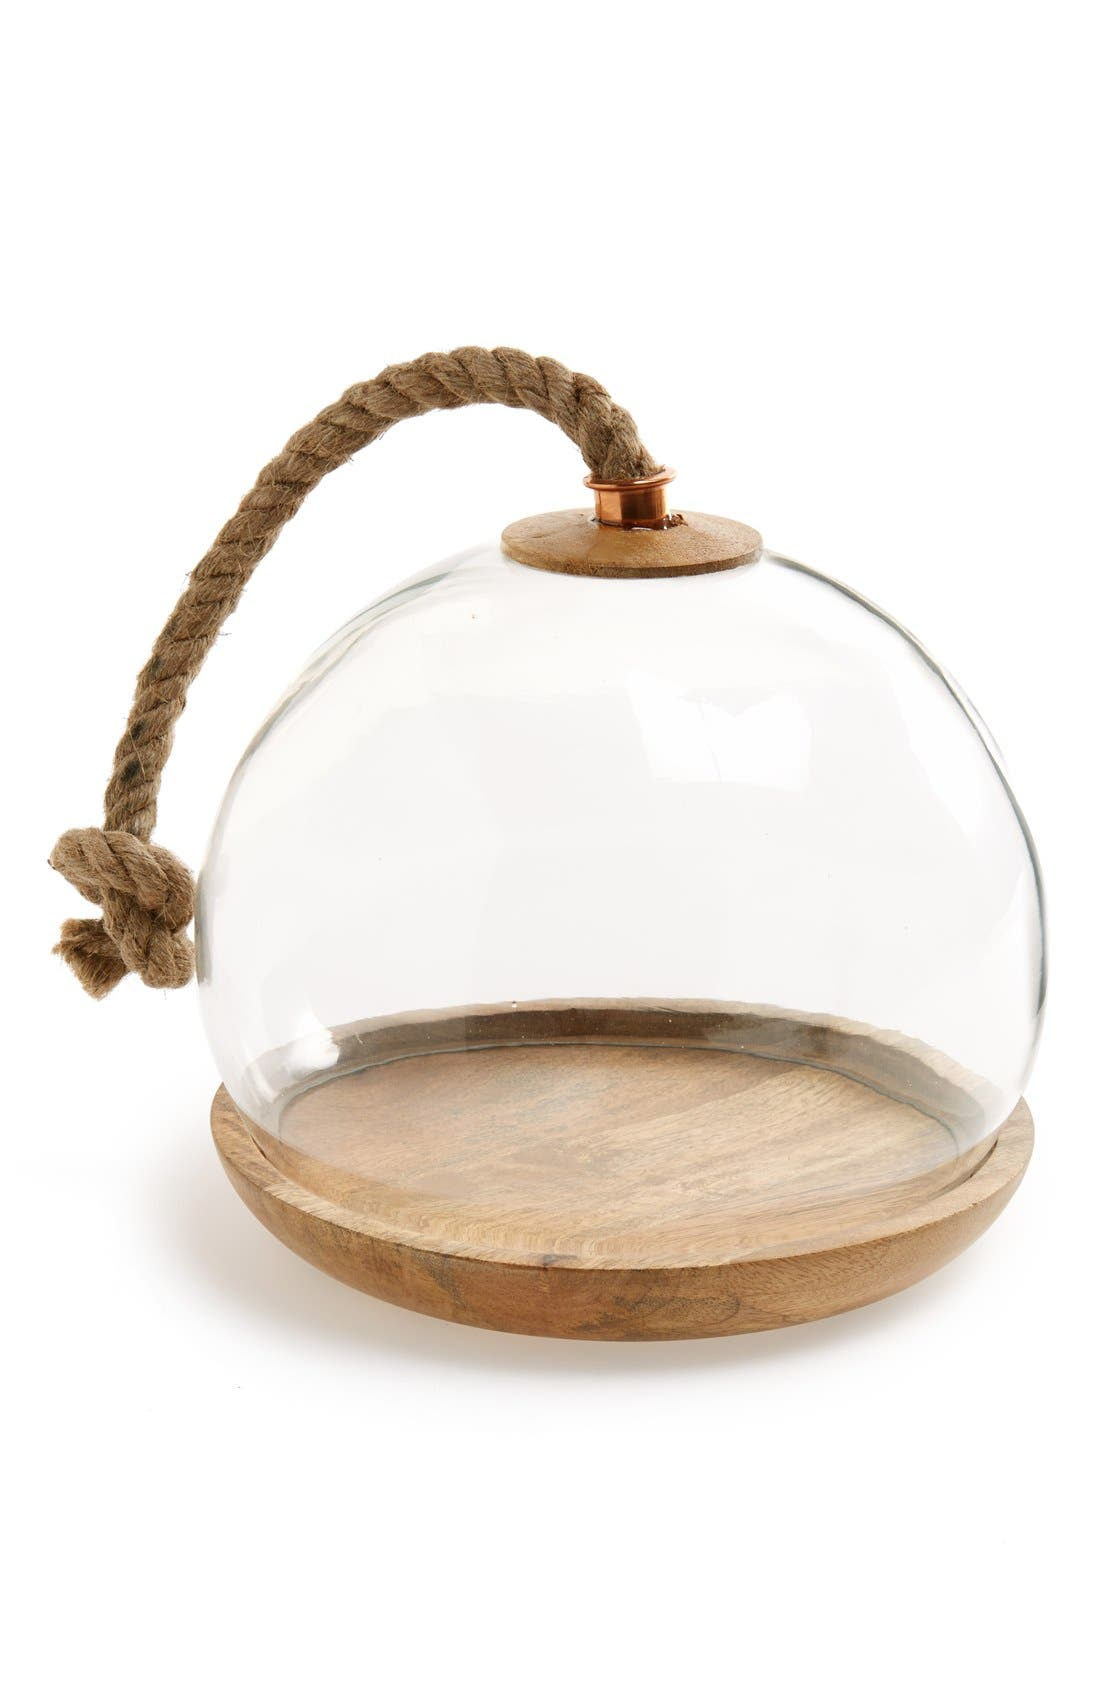 THIRSTYSTONE 'Urban Farm' Glass Domed Wooden Serving Tray